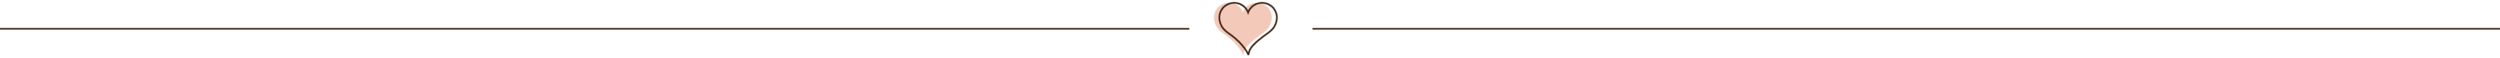 LovelyPaperThings_Homepageiconrefresh_2-14.png